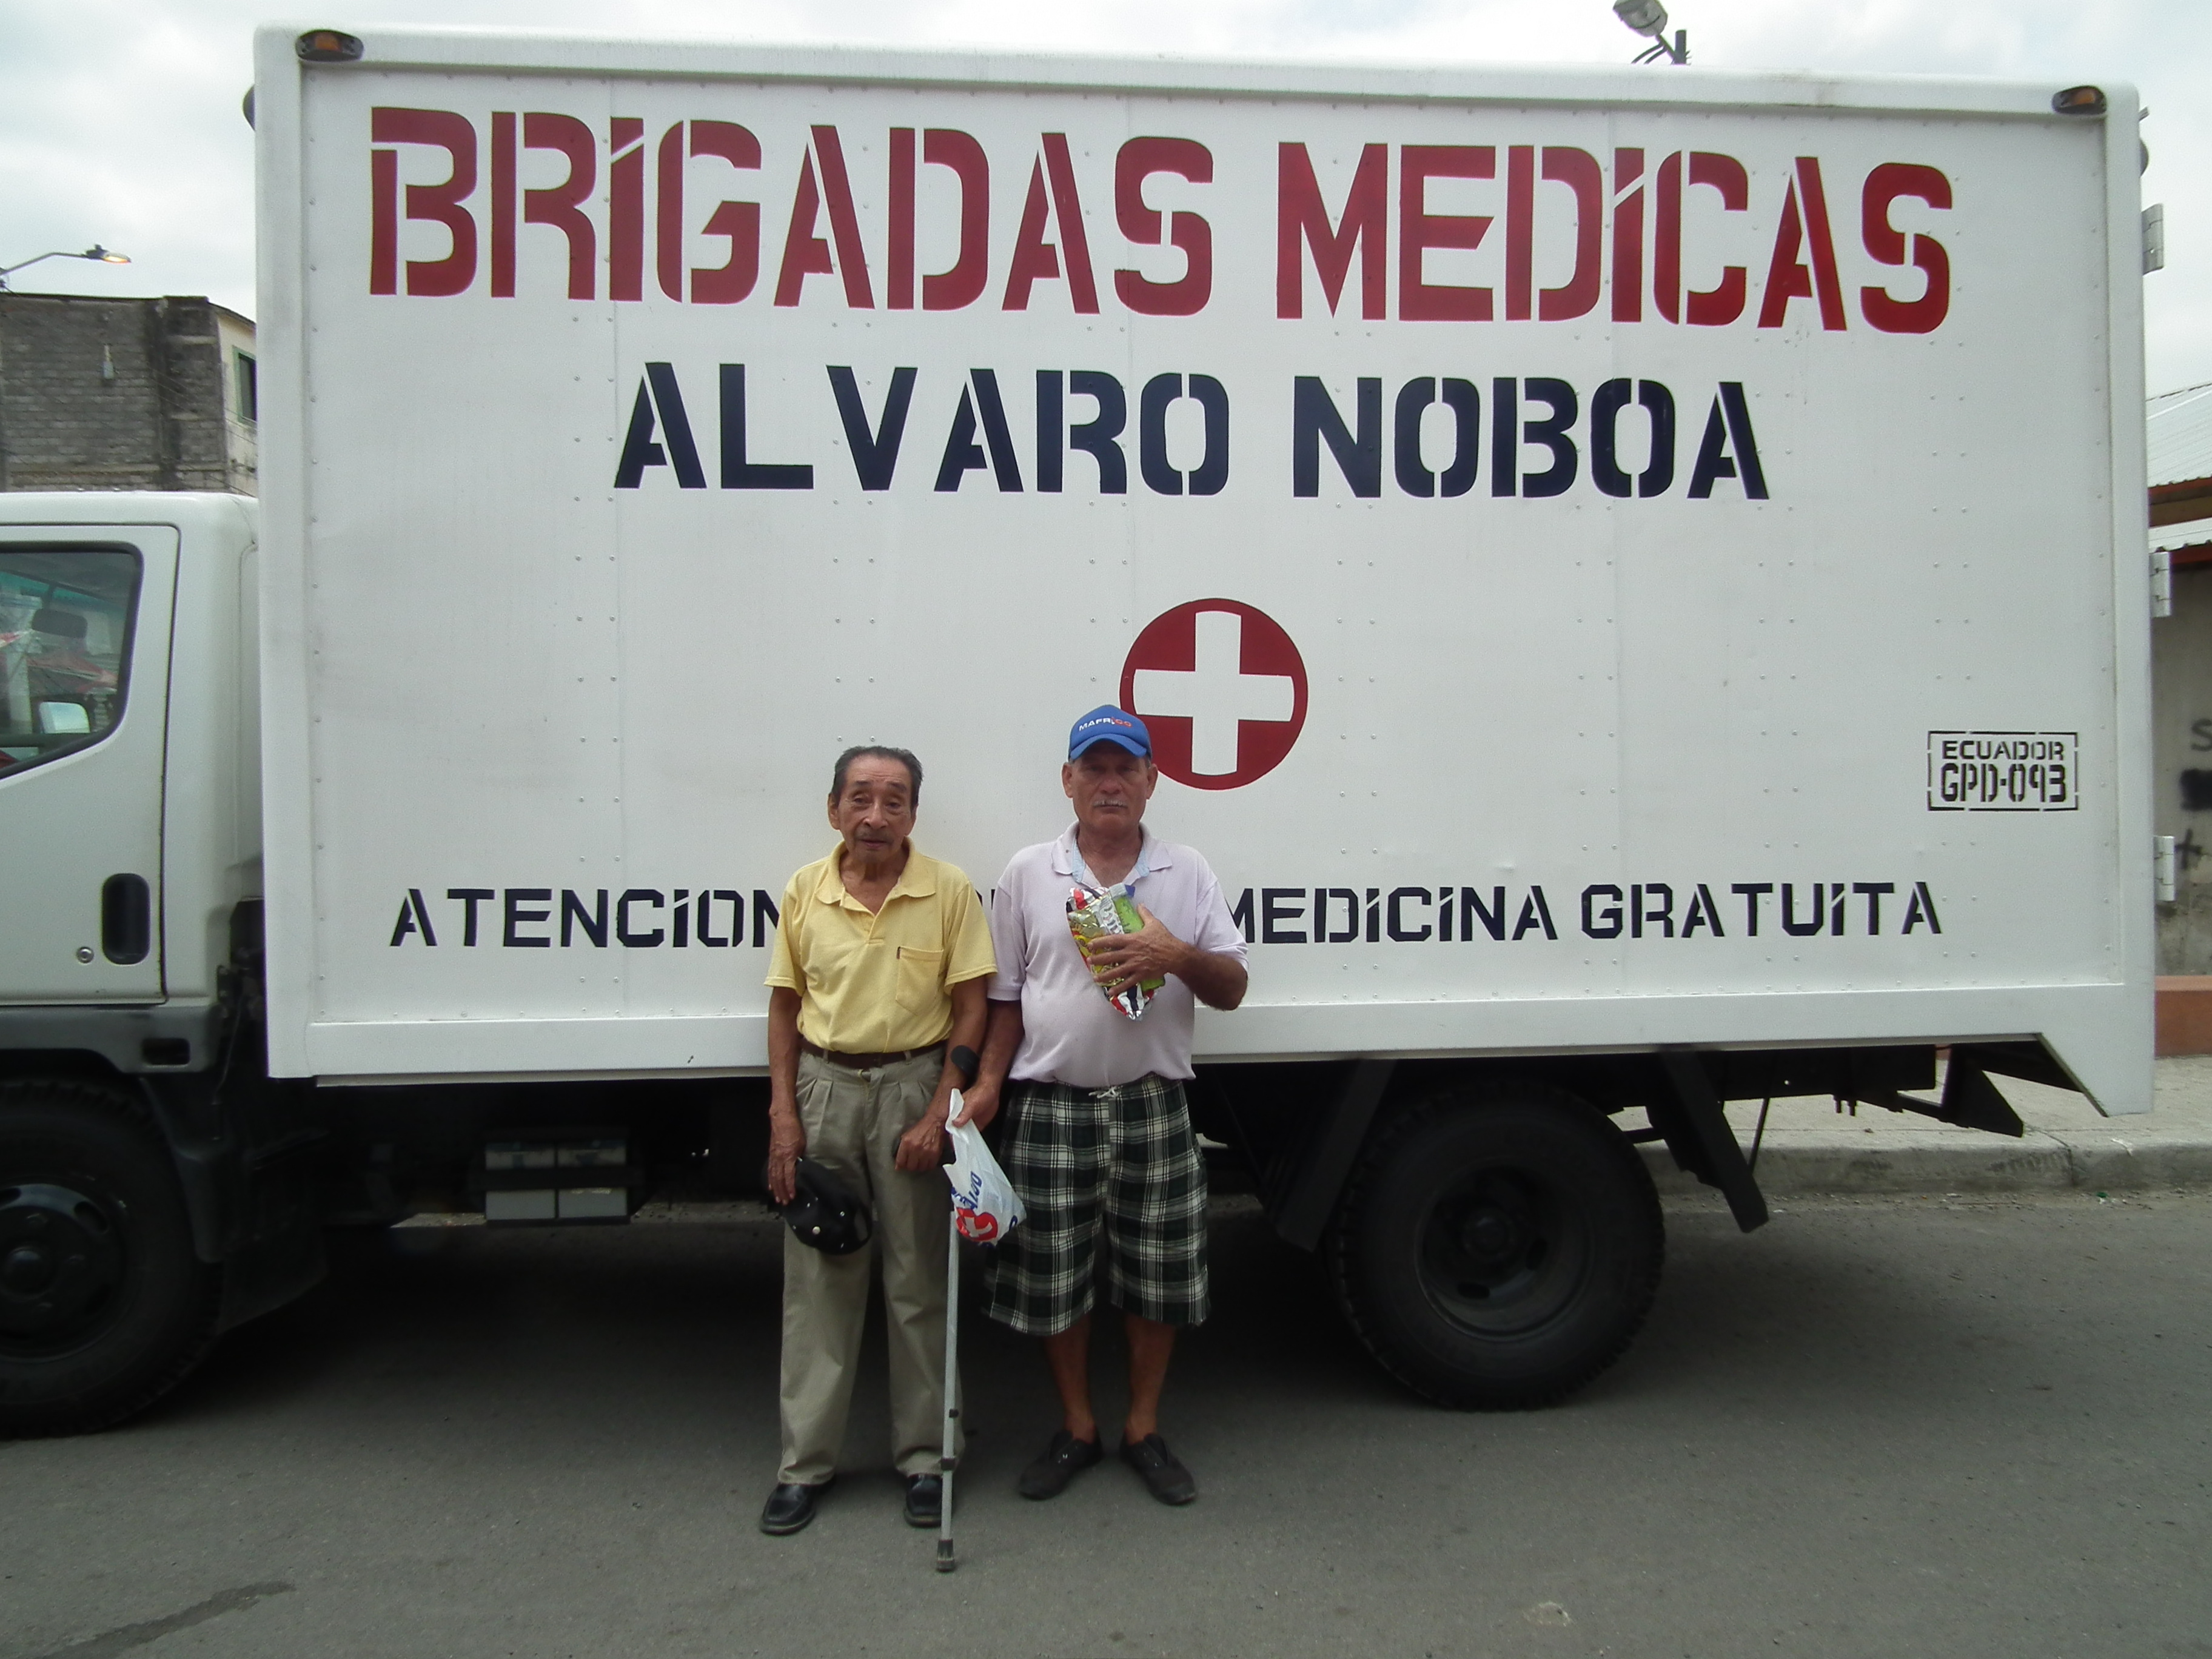 [Photos] Medical Brigades at Bastion October 31th, 2012